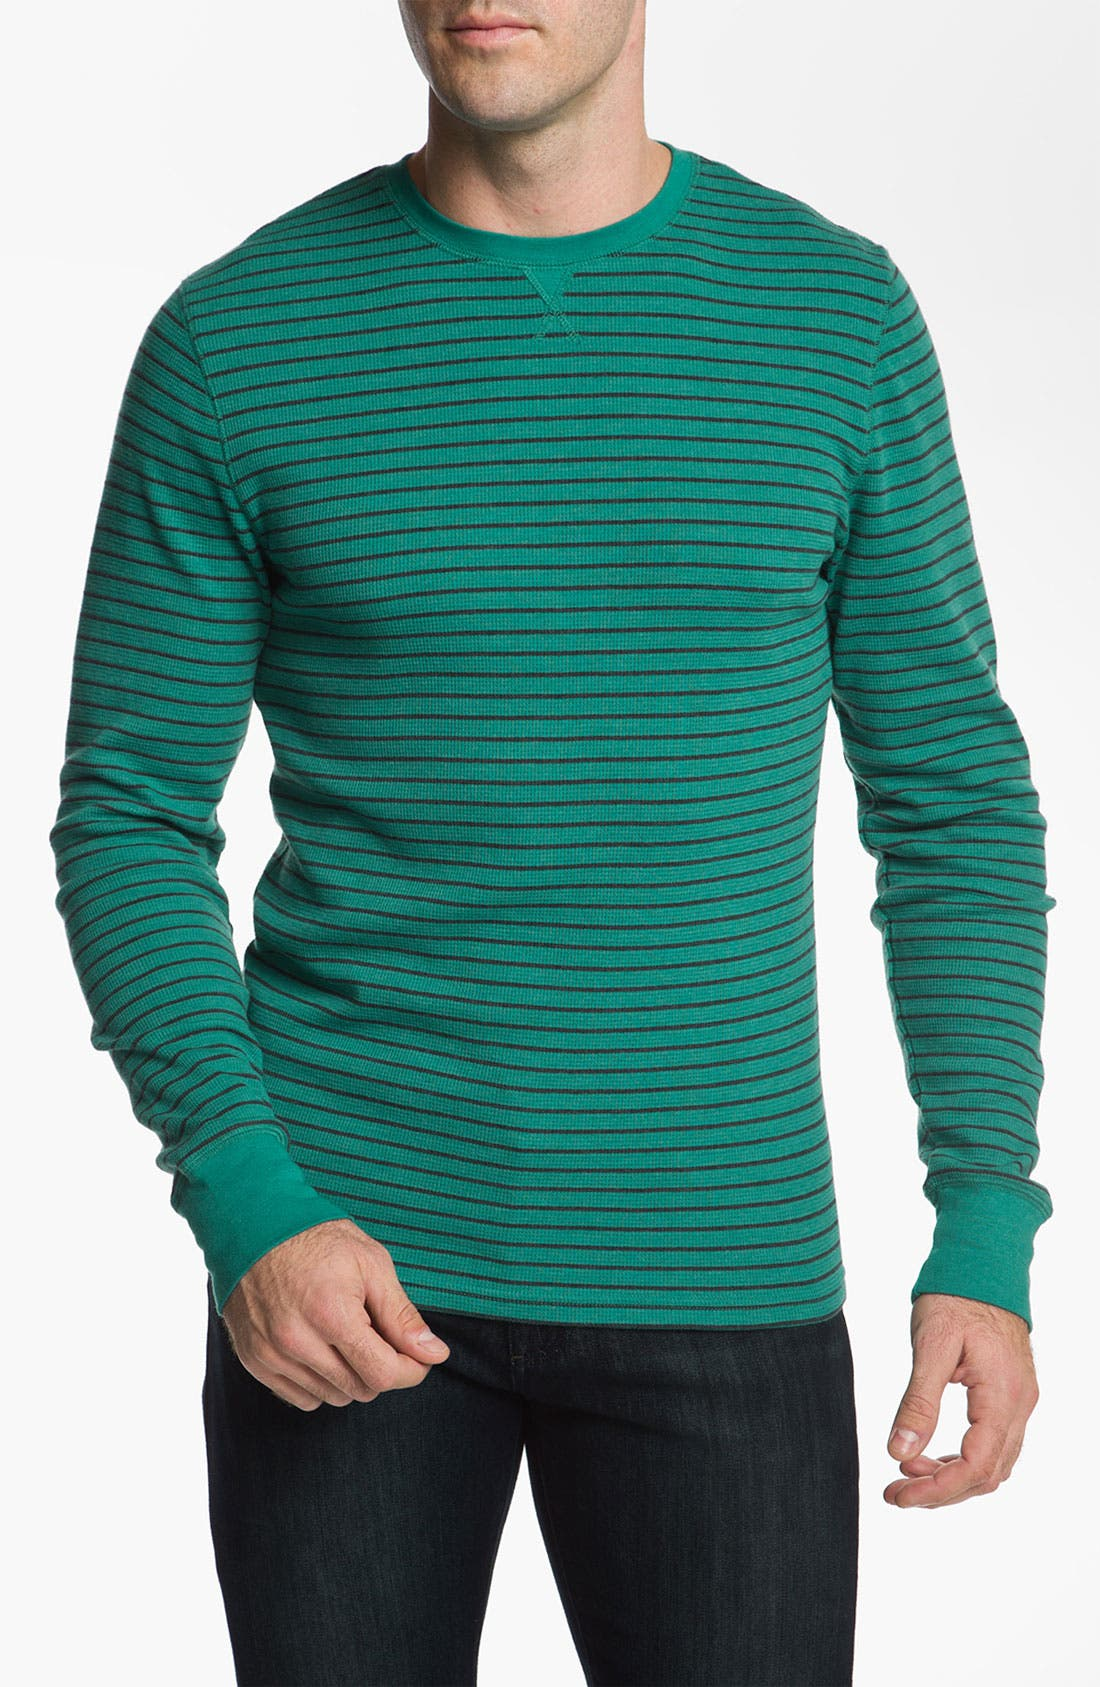 Main Image - The Rail by Public Opinion Stripe Thermal Shirt